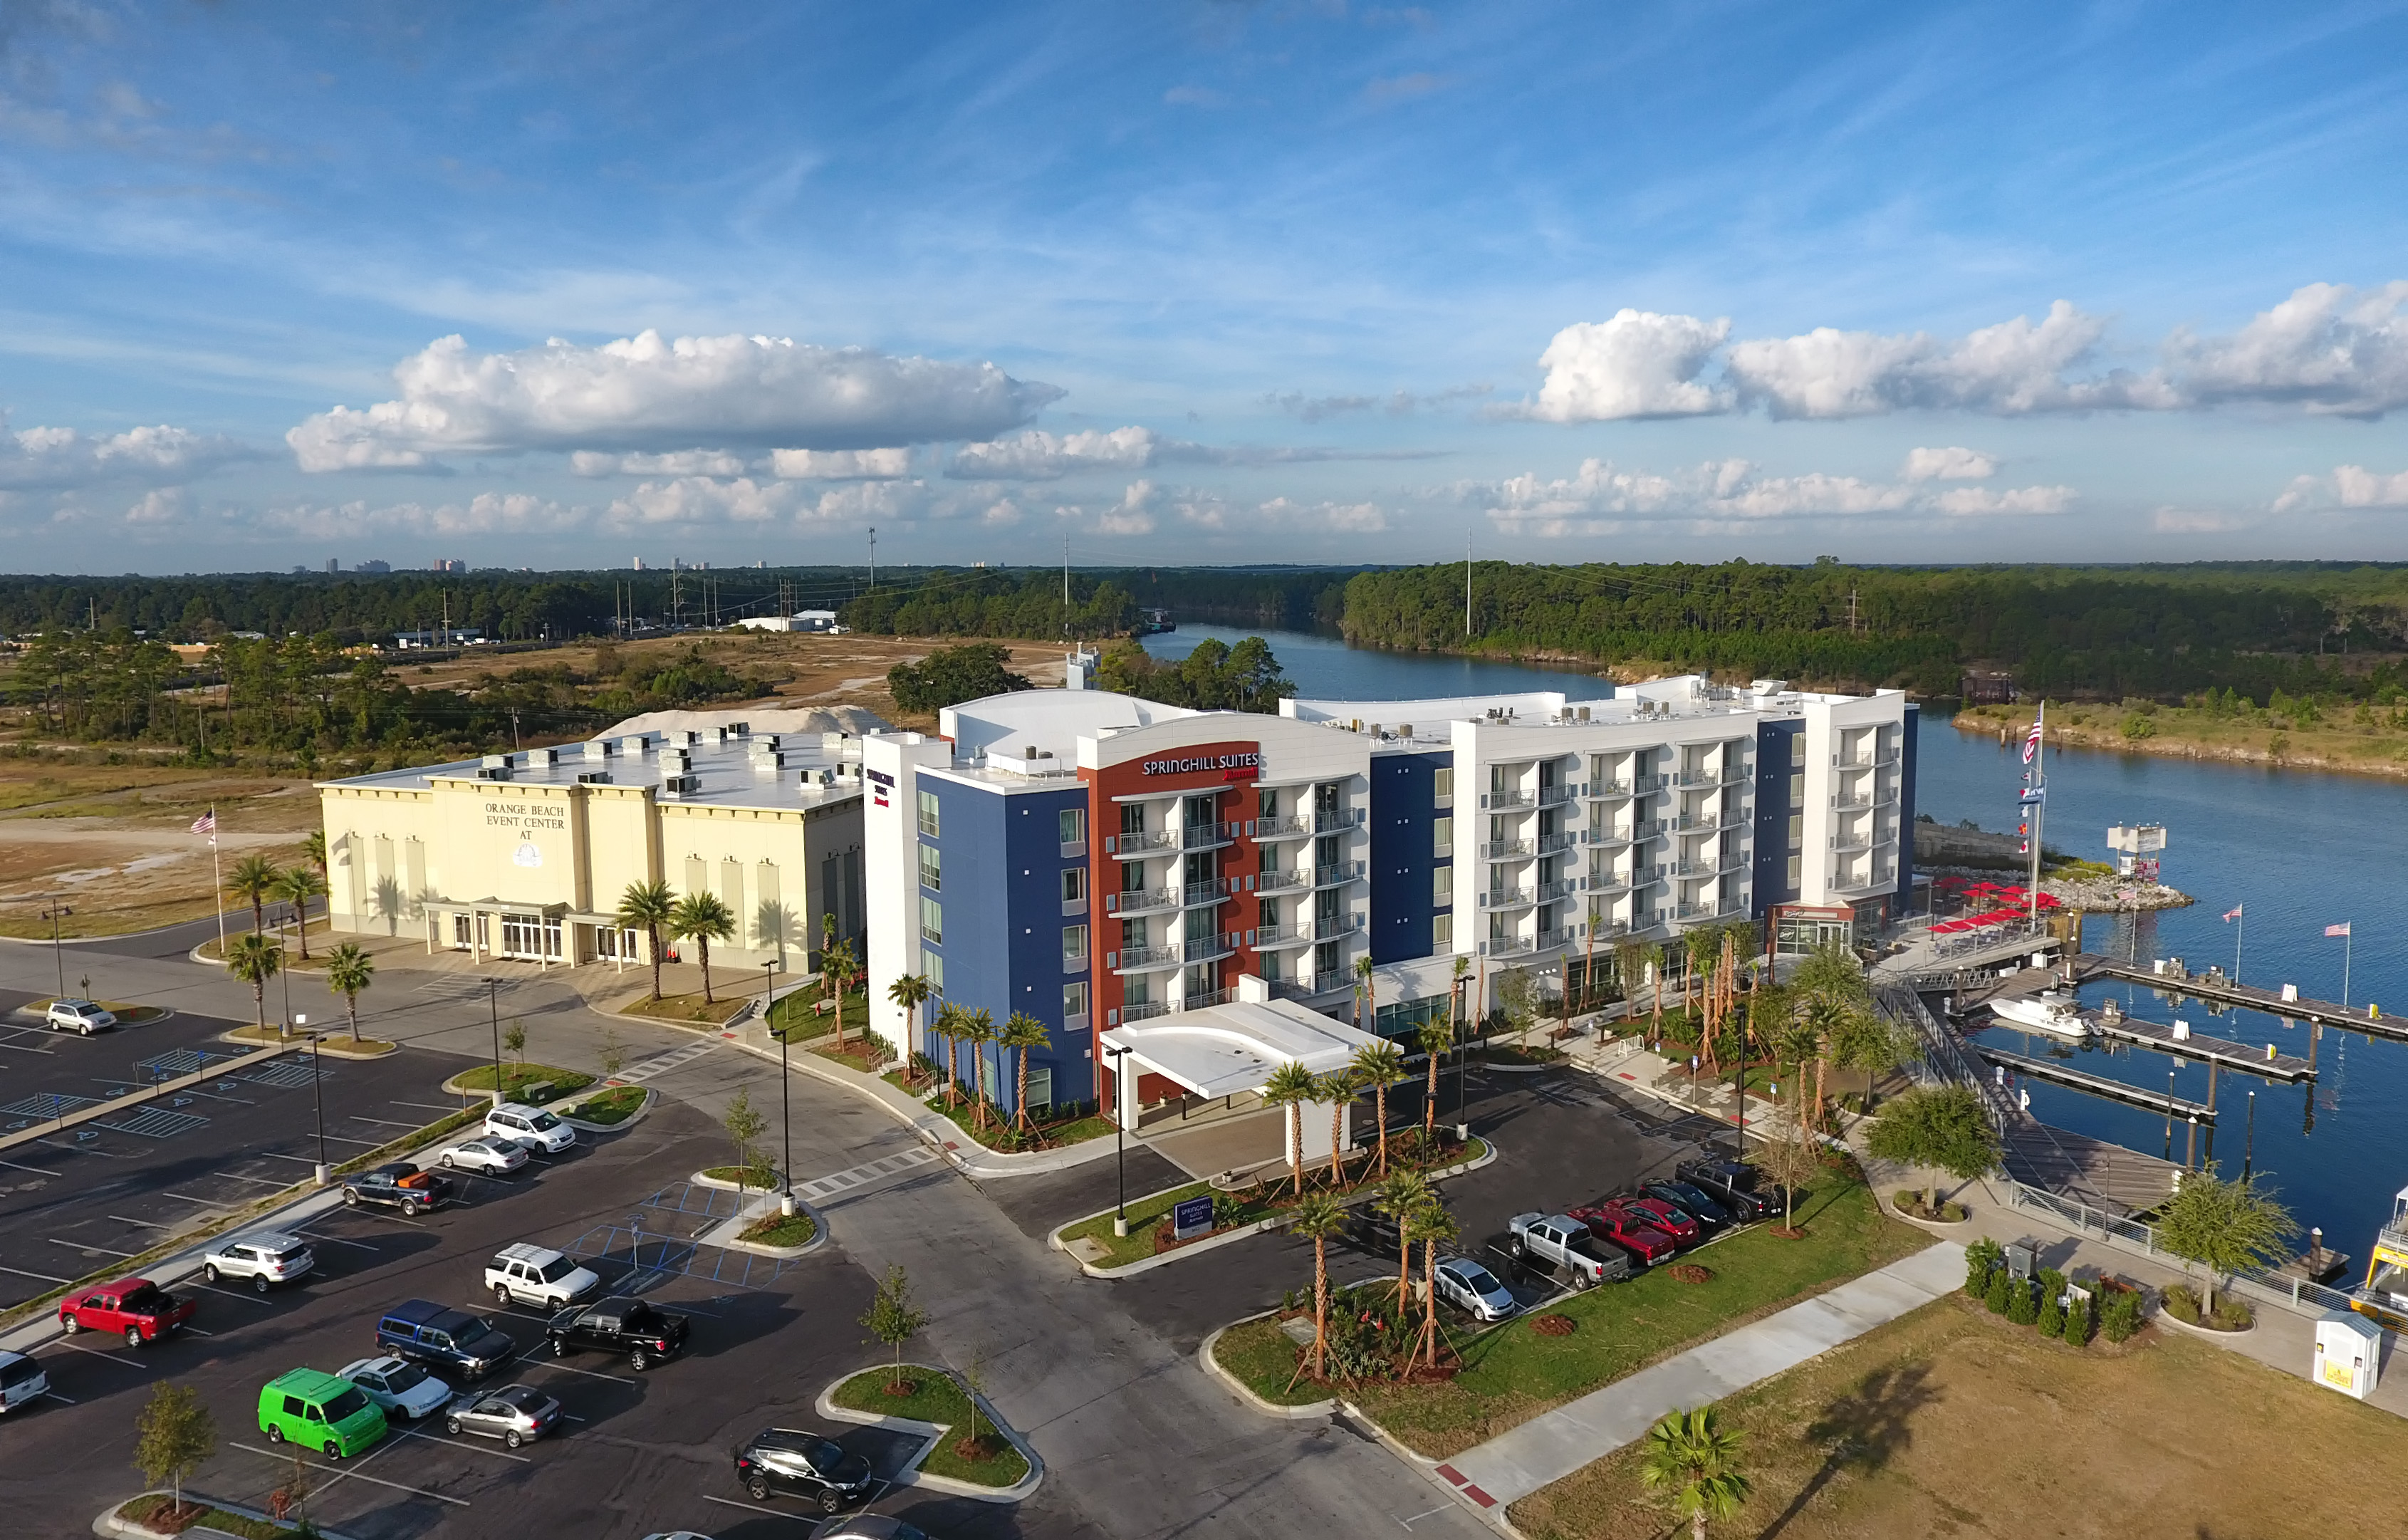 SpringHill Suites by Marriott Orange Beach at The Wharf image 0